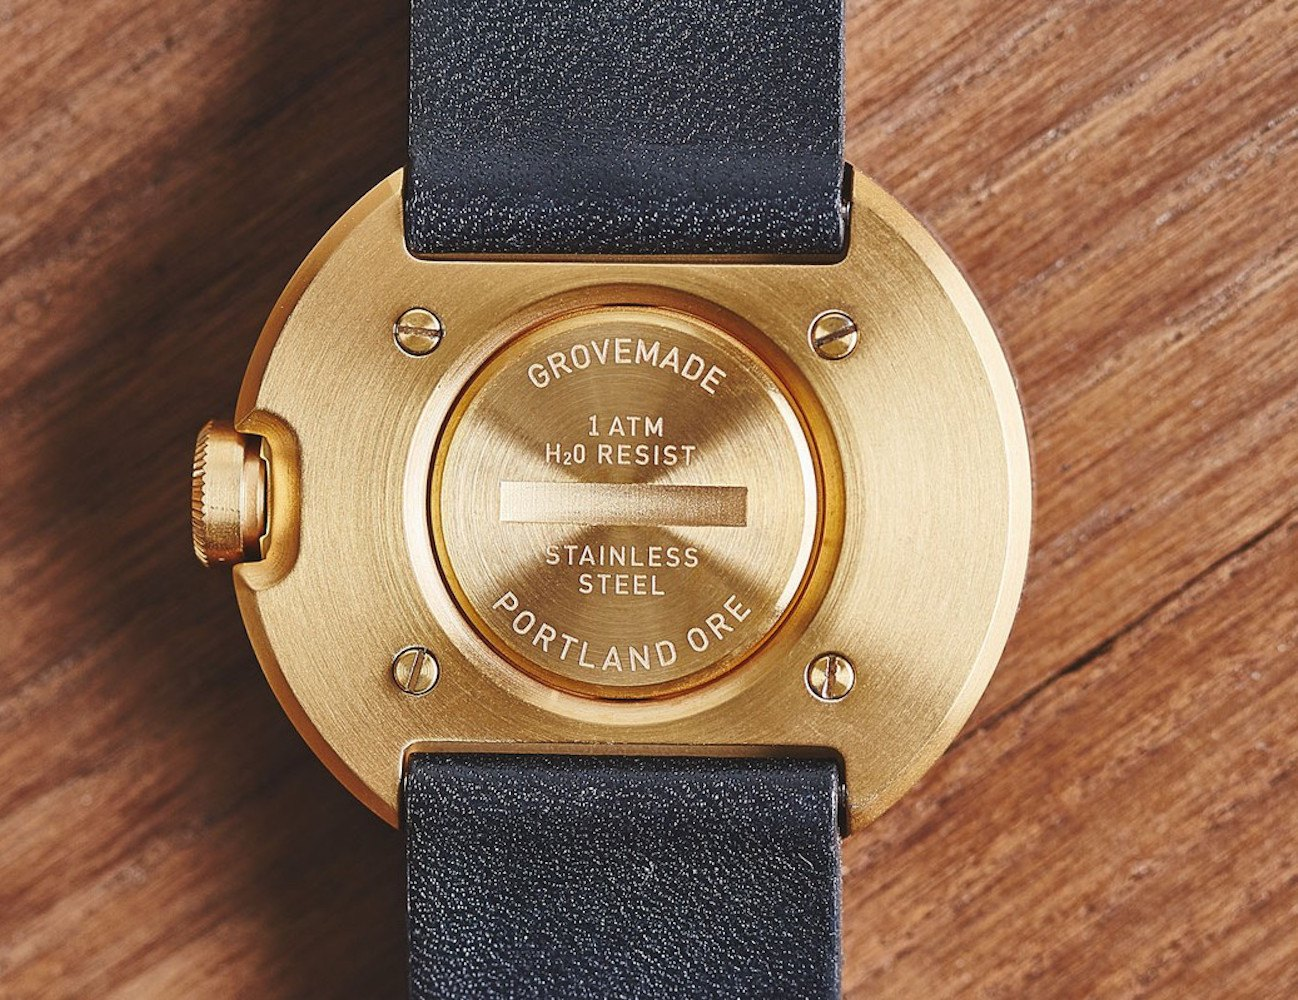 Special Edition Gold Watch by Grovemade